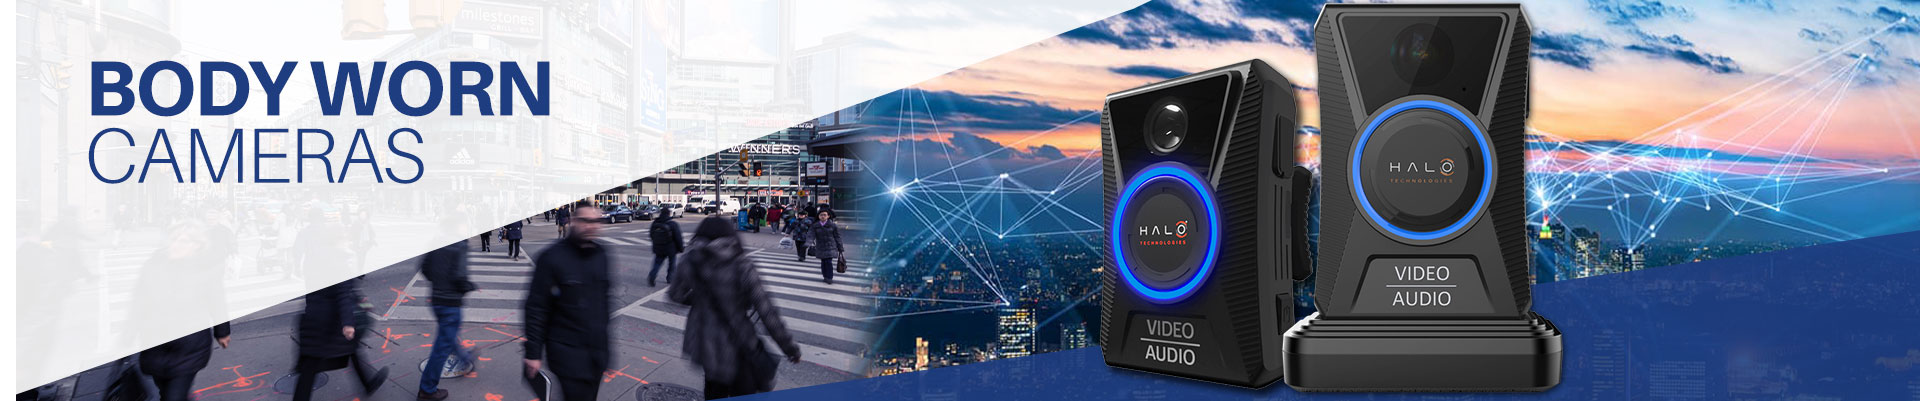 Body cameras event solutions banner image